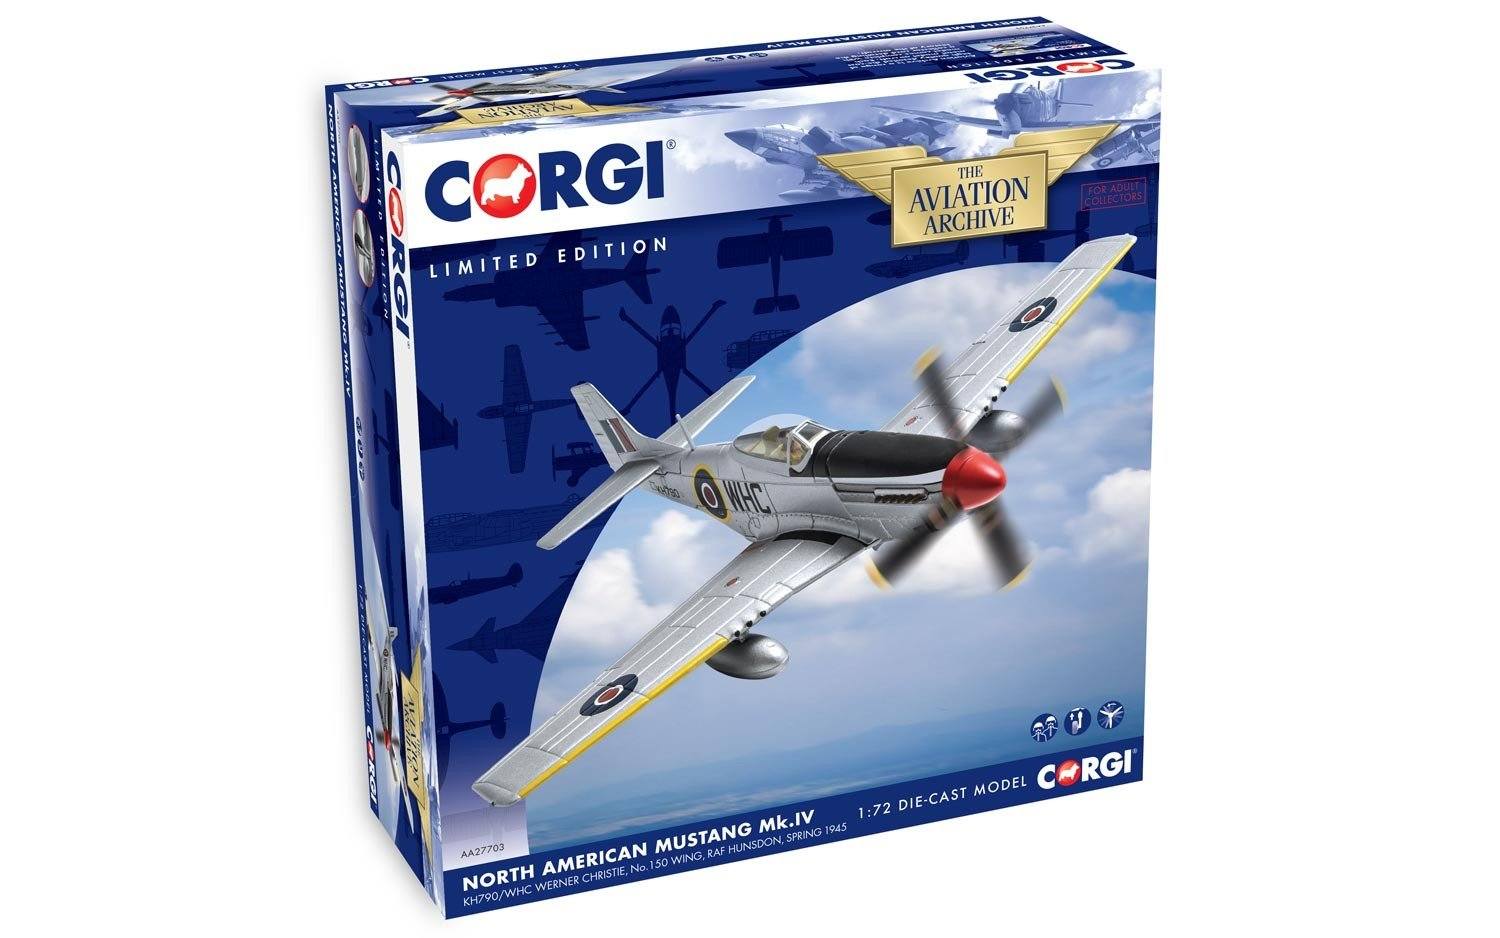 Corgi AA27703 Boeing North American Mustang MK.IV KH790 - Cristiano Werner Modelo 150